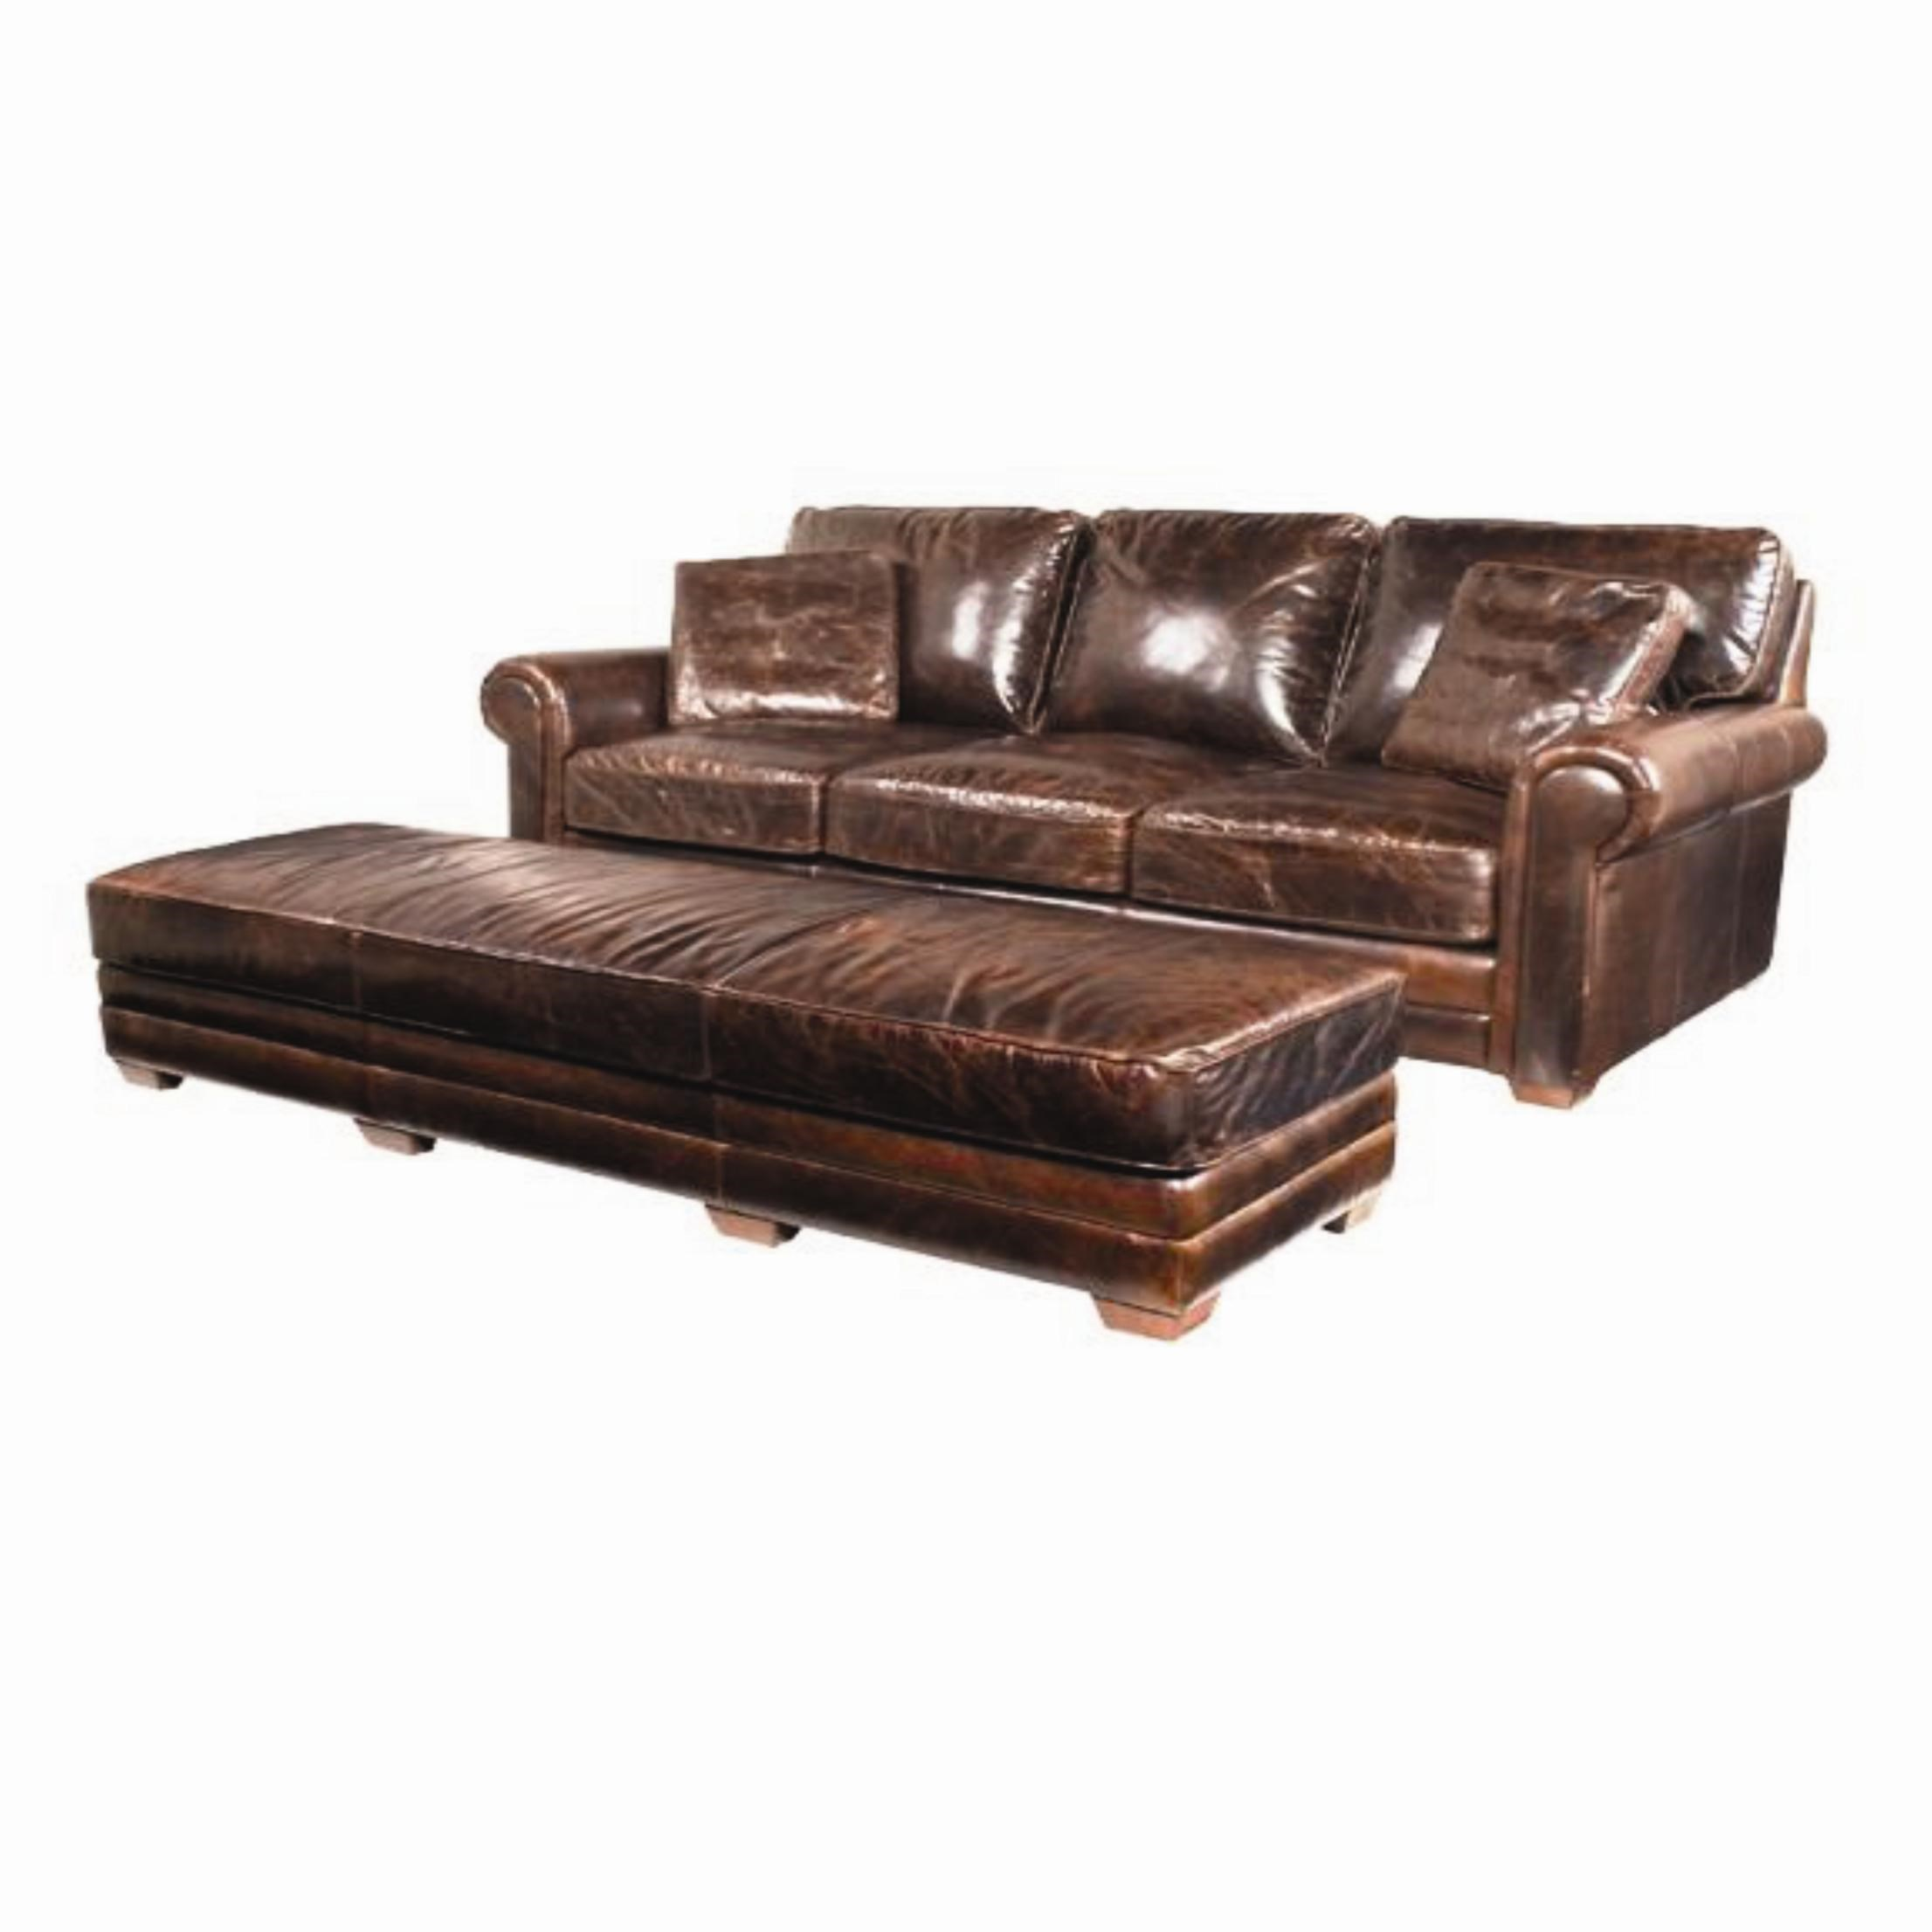 mckinley leather sofa costco villapaprika sofabord spectra home review photo